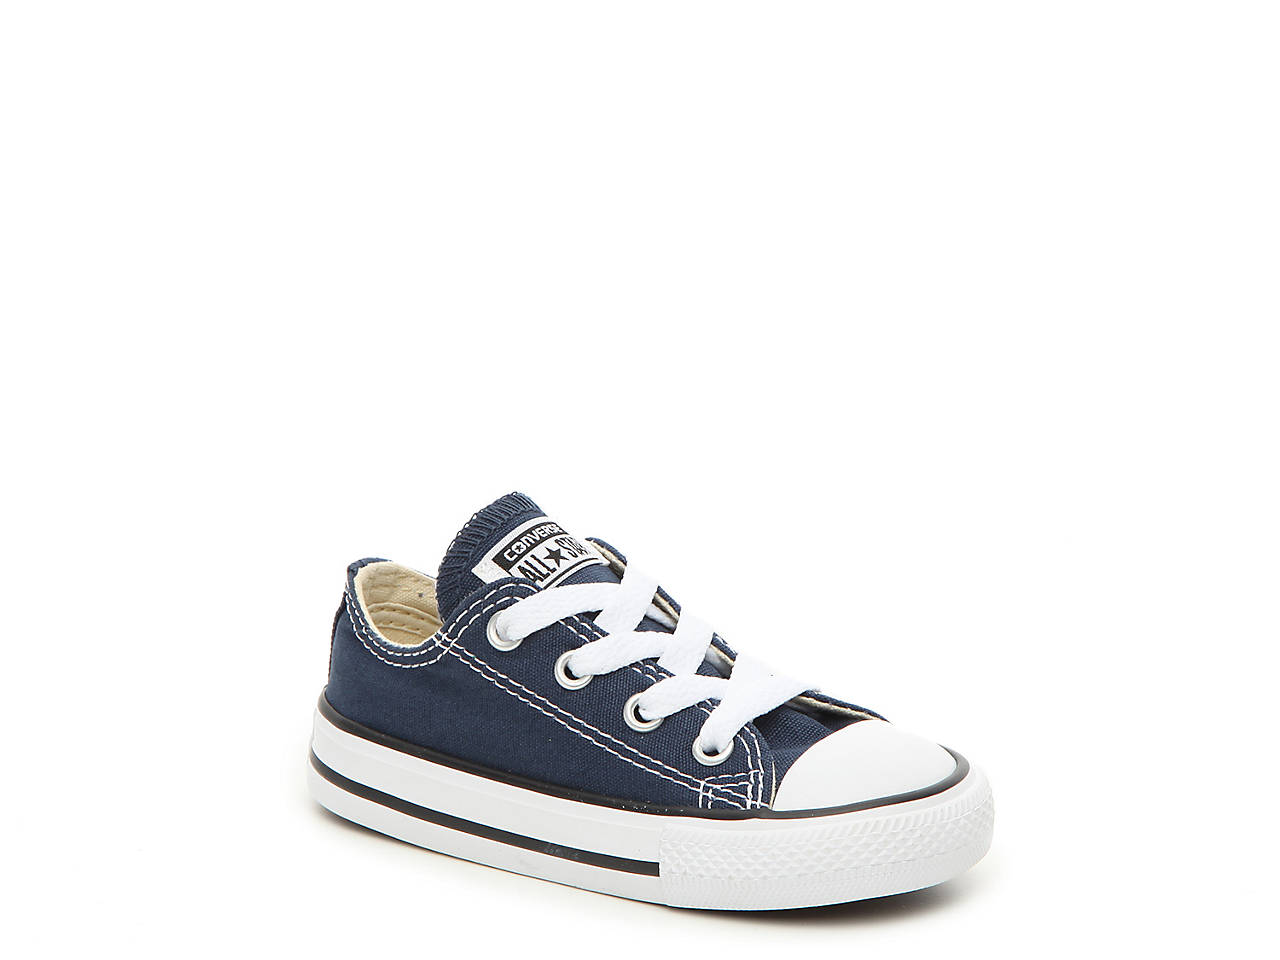 28b061d7d0c5 Converse Chuck Taylor All Star Infant   Toddler Sneaker Kids Shoes